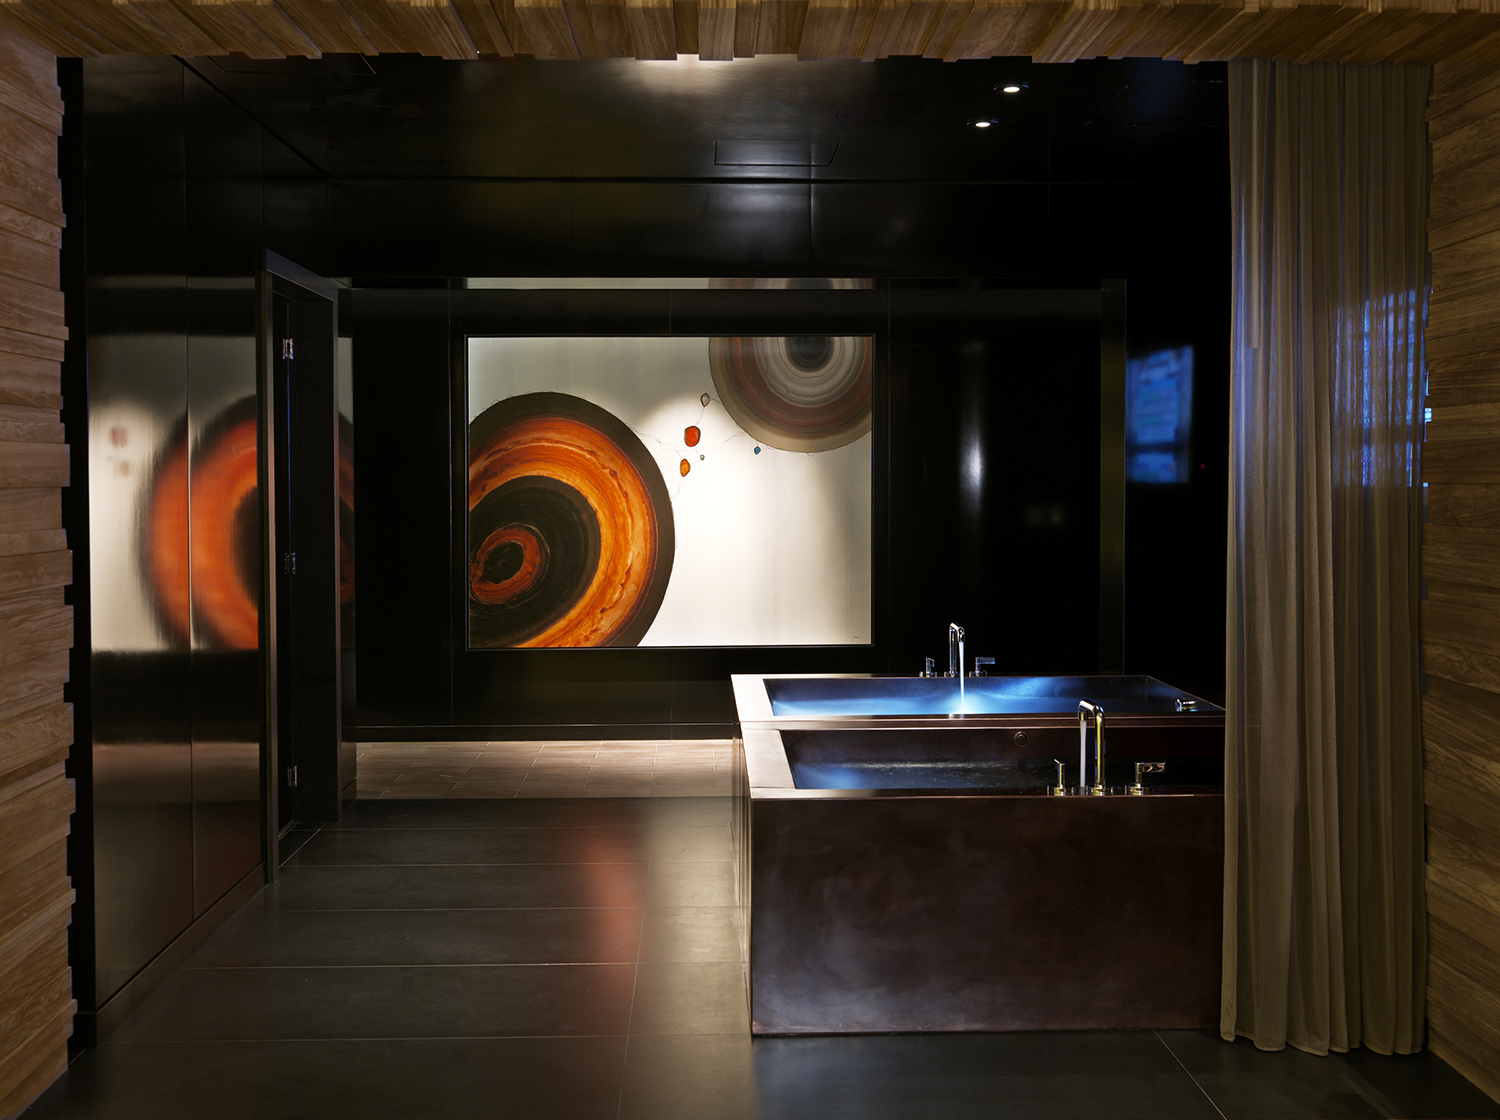 The spa's luxurious amenities include experiential monsoon rain showers, steam room, sauna and cool mist room prior to and after services.